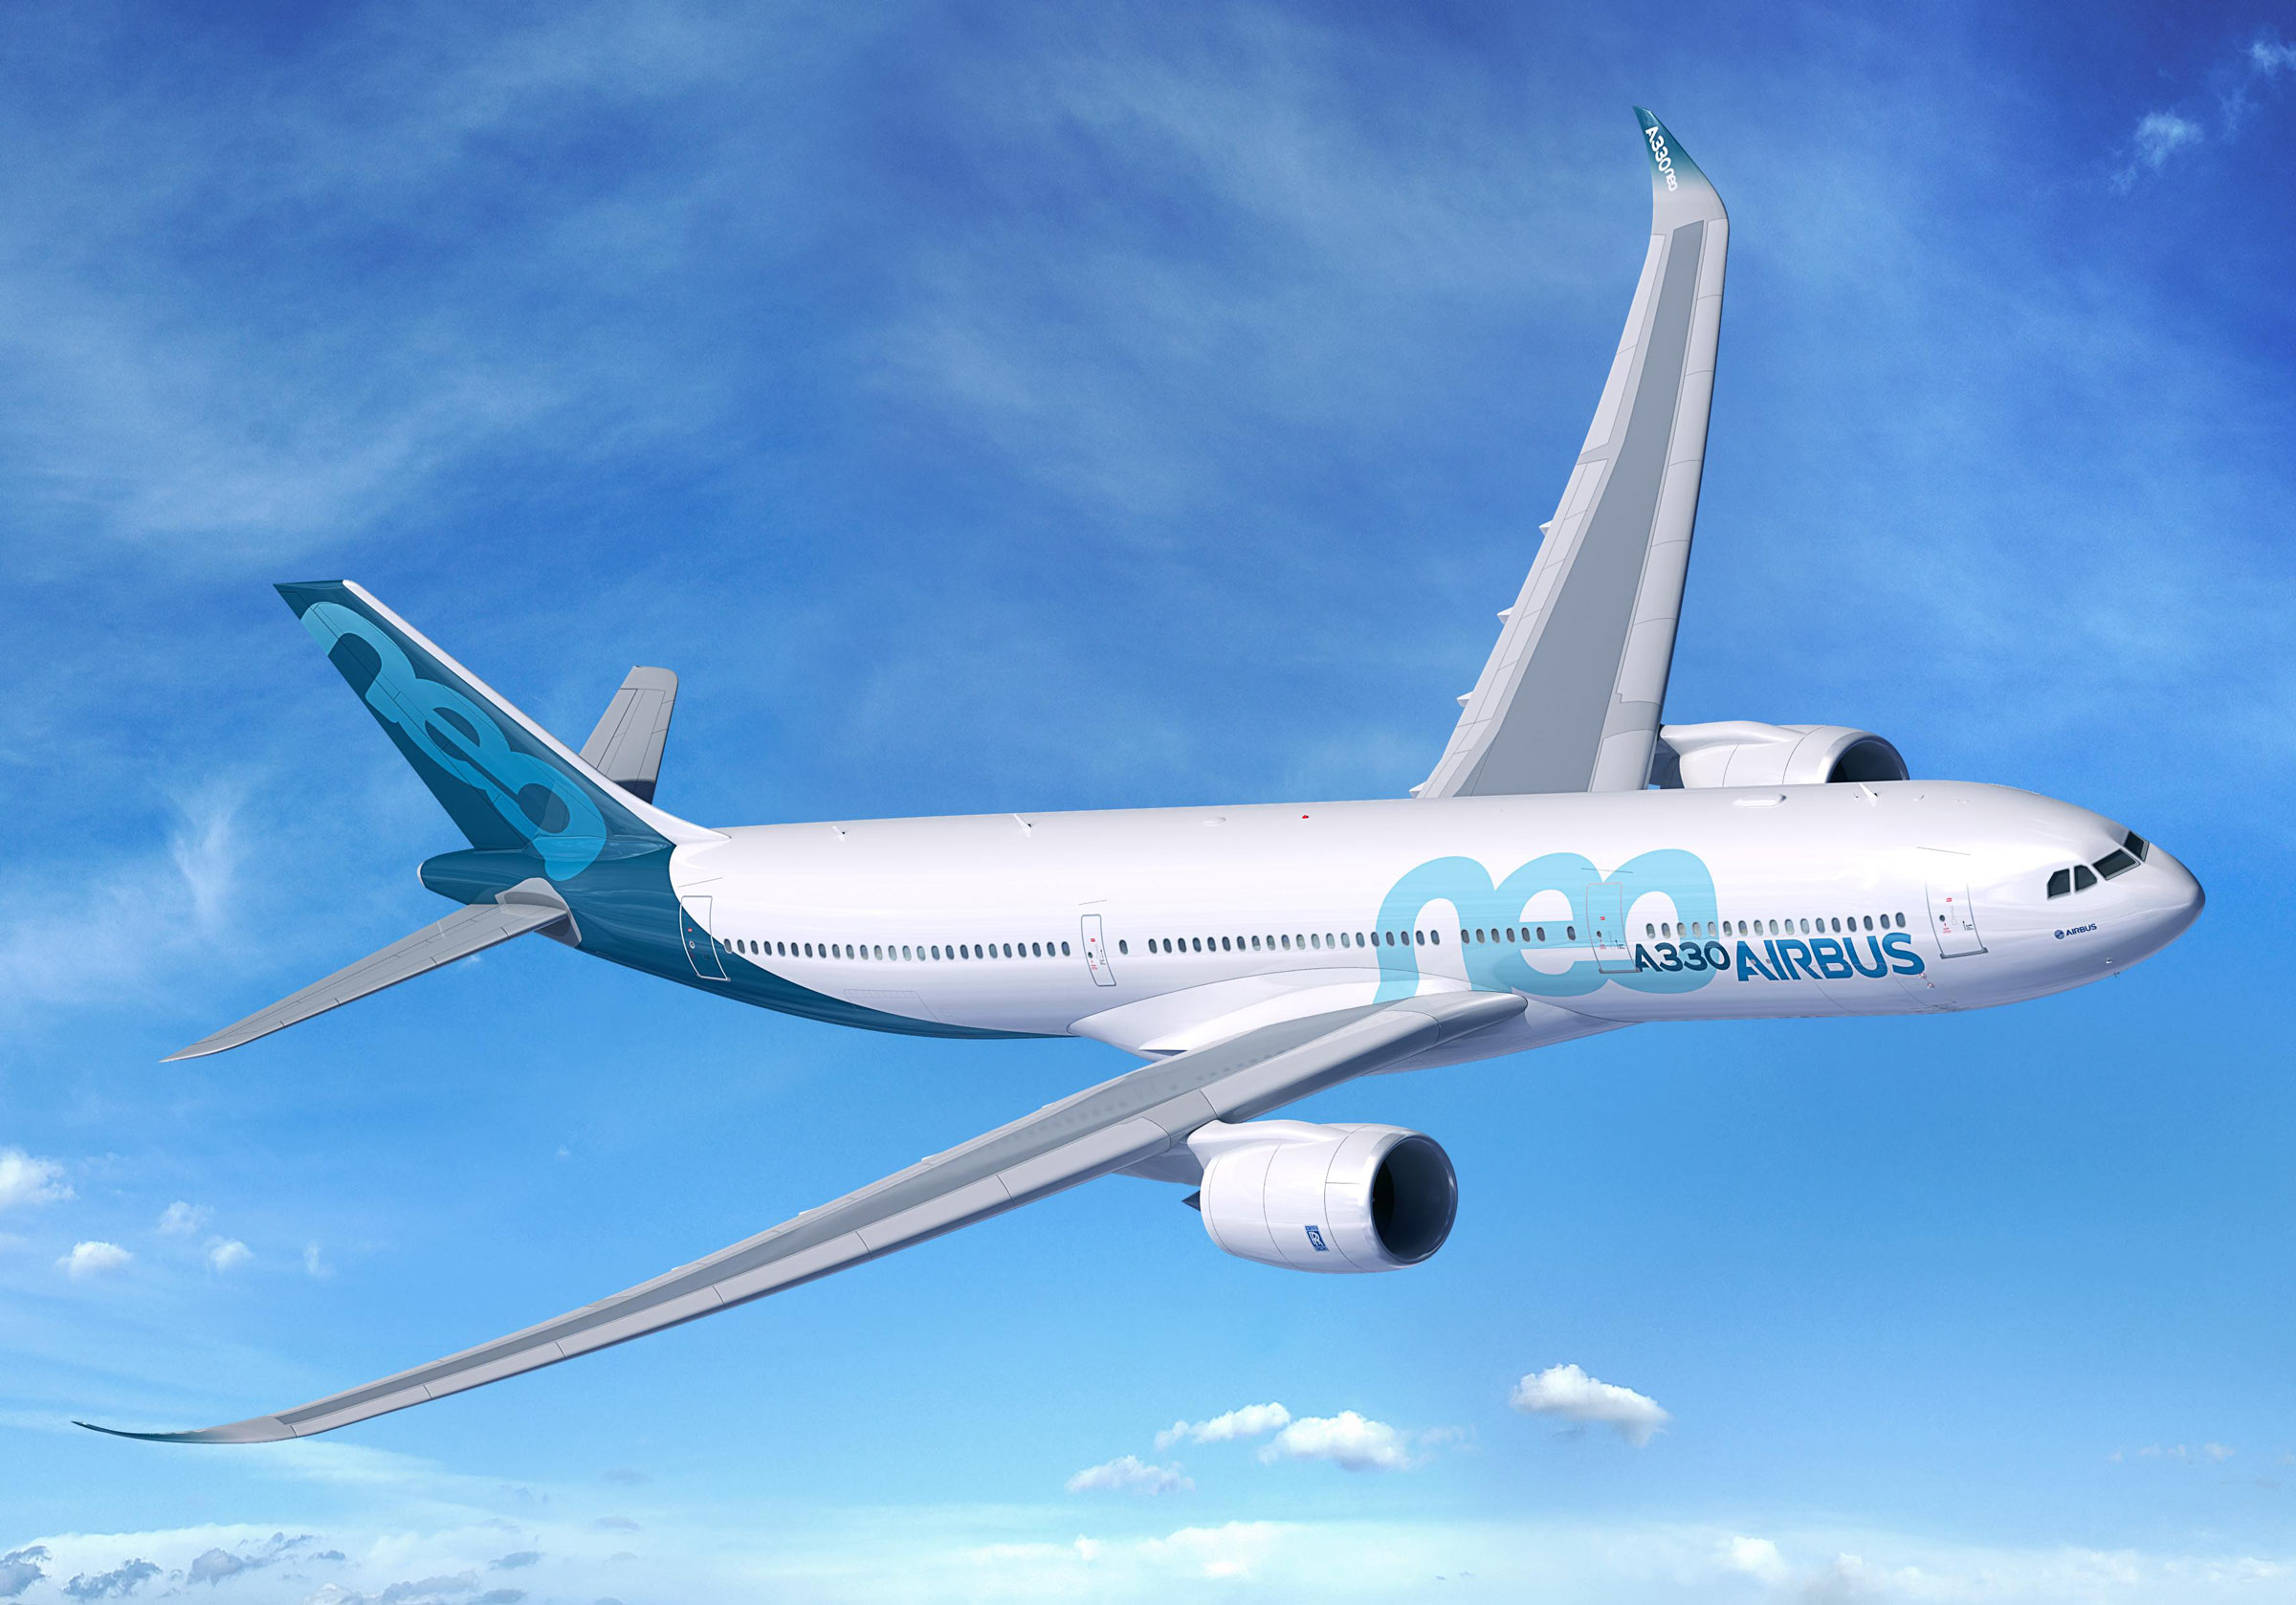 A computer rendering of the Airbus A330-900neo